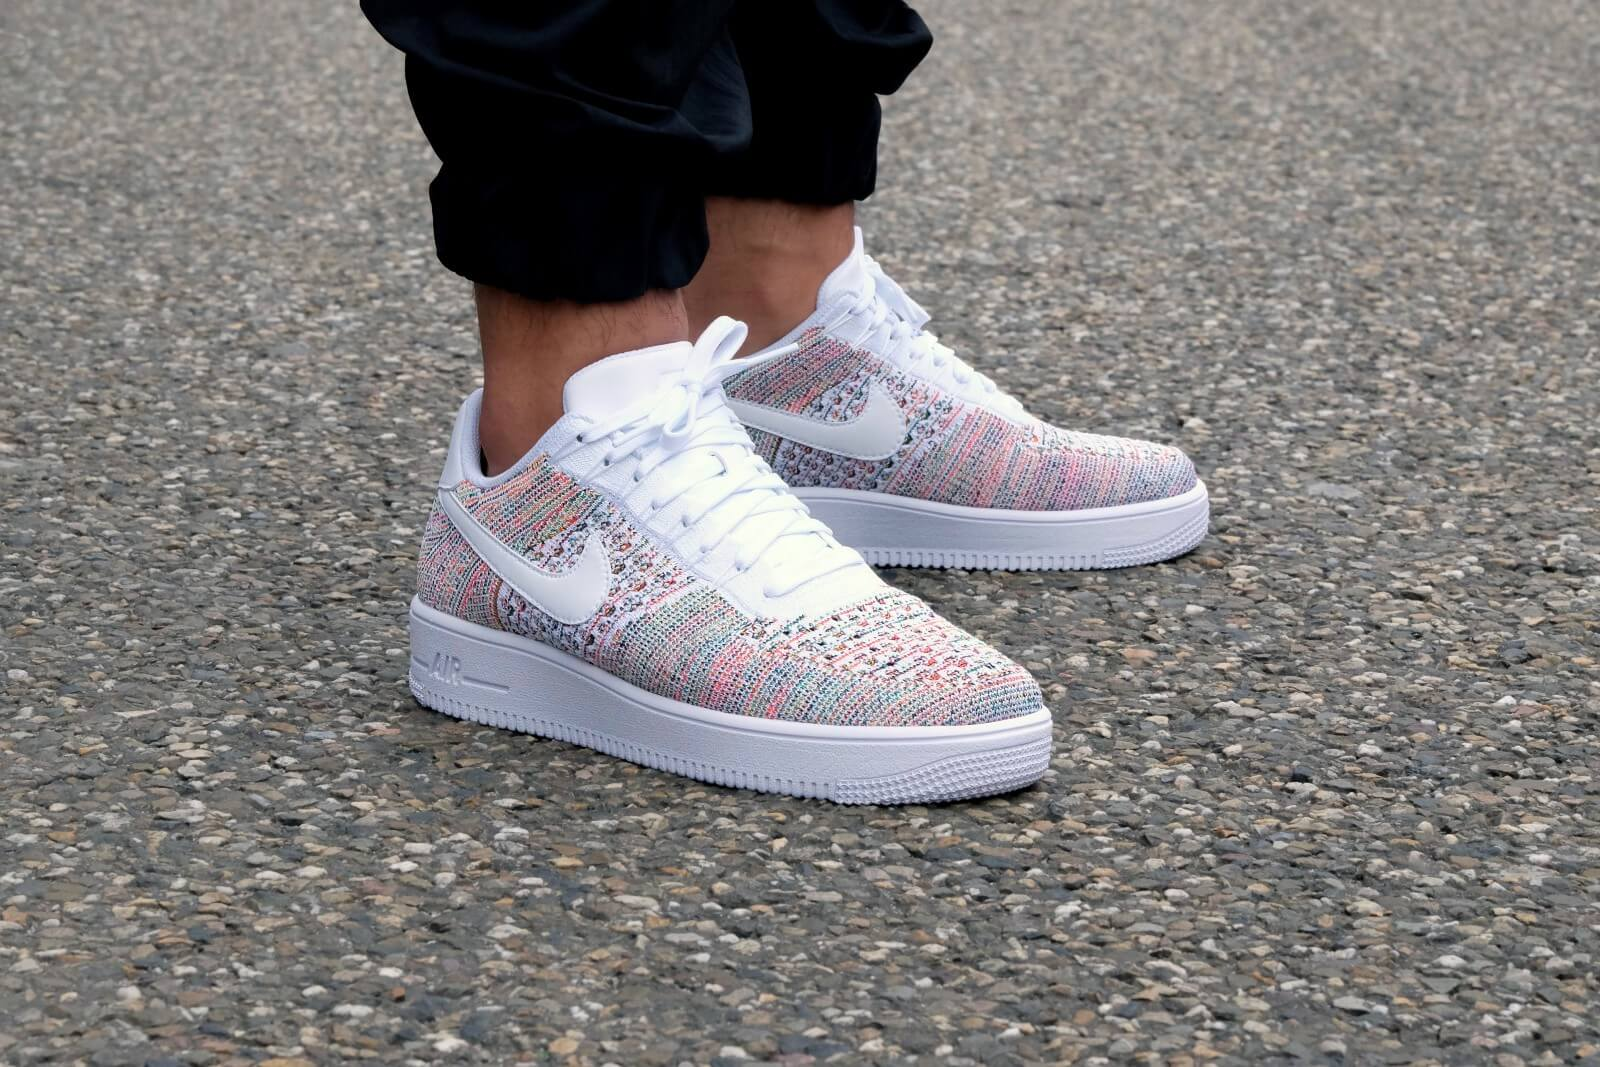 3e11bfcac721d The Nike Nike Air Force 1 Ultra Flyknit Low Yellow StrikeWhite-Bright  Crimson-White ...